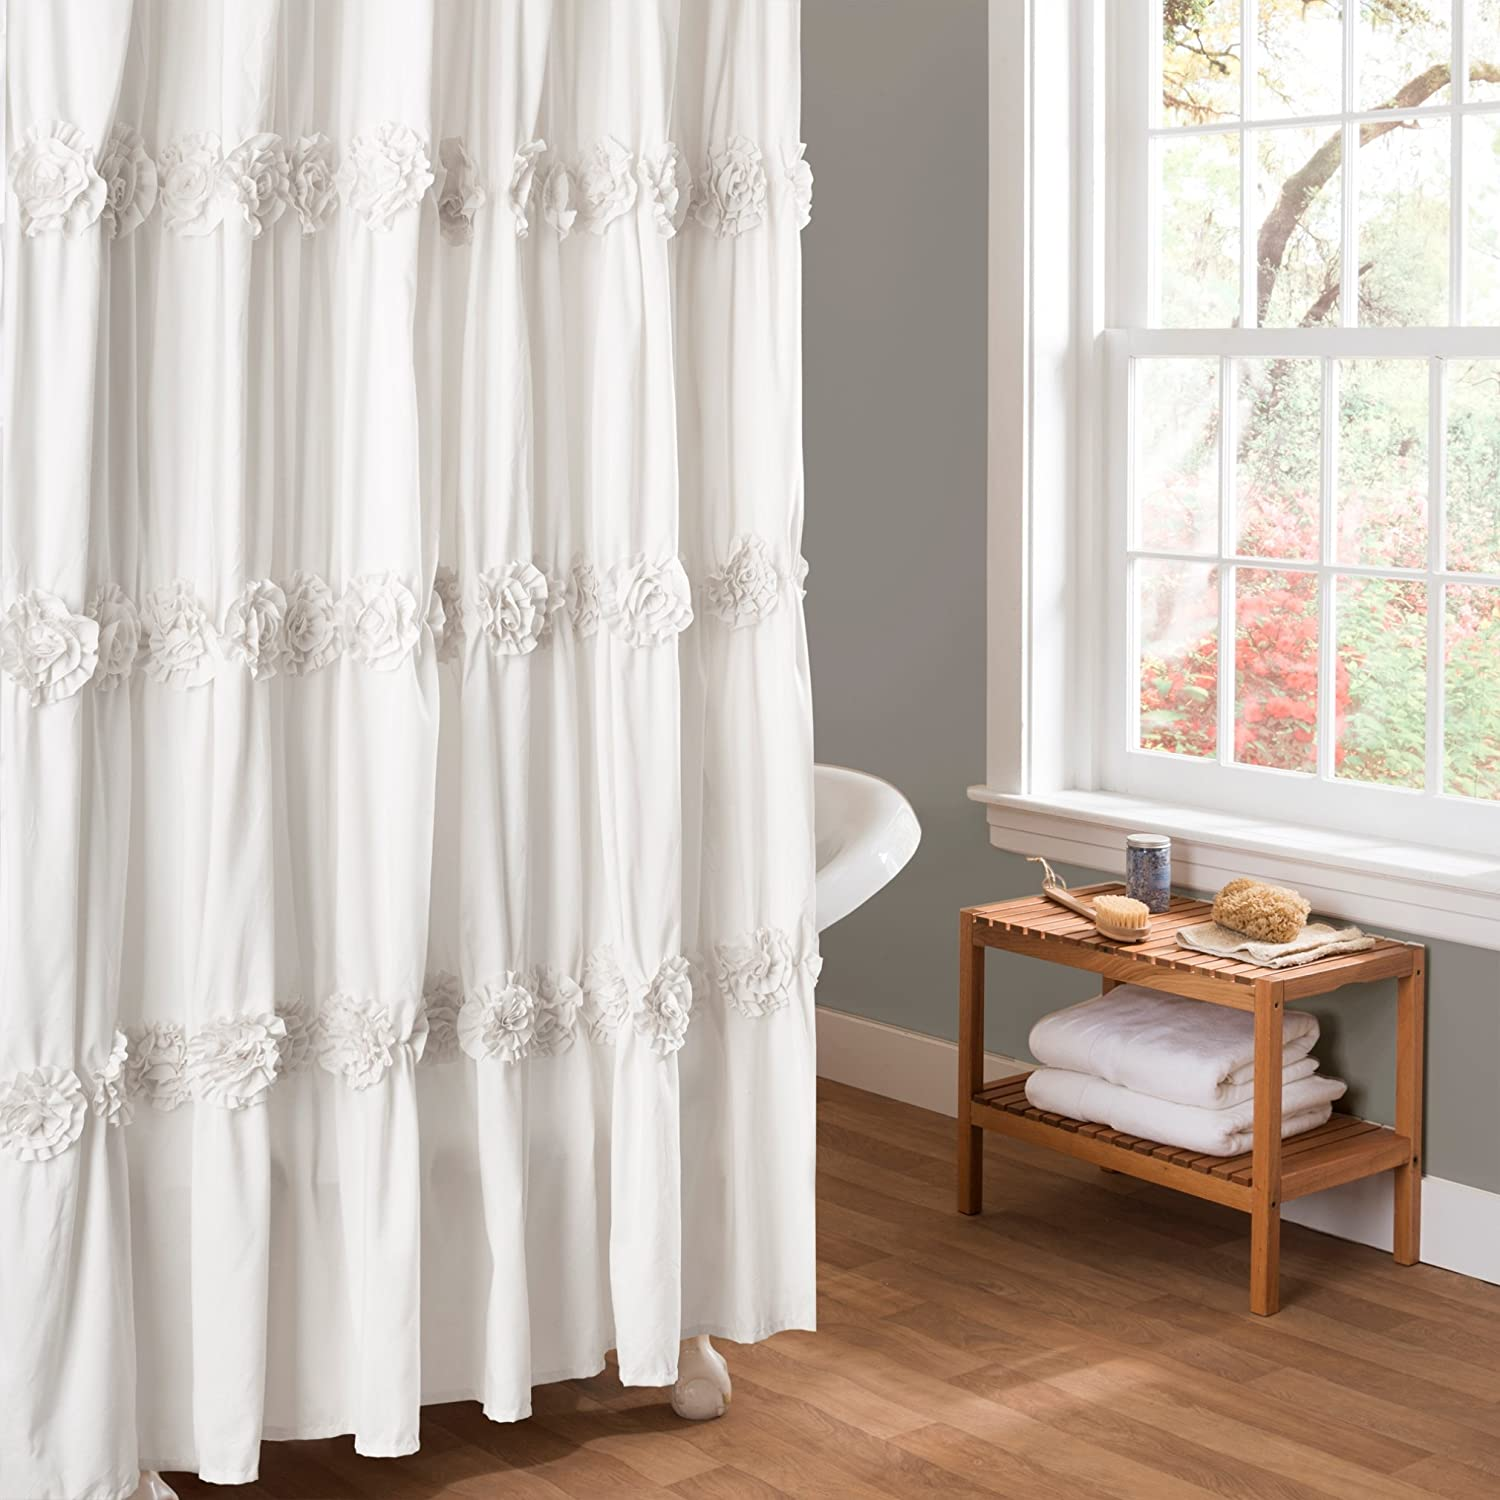 sets decorative article grey curtain inexpensive ibiza rug bronze valance tag contemporary bathroom shower luxury curtains and cheap fabric with home